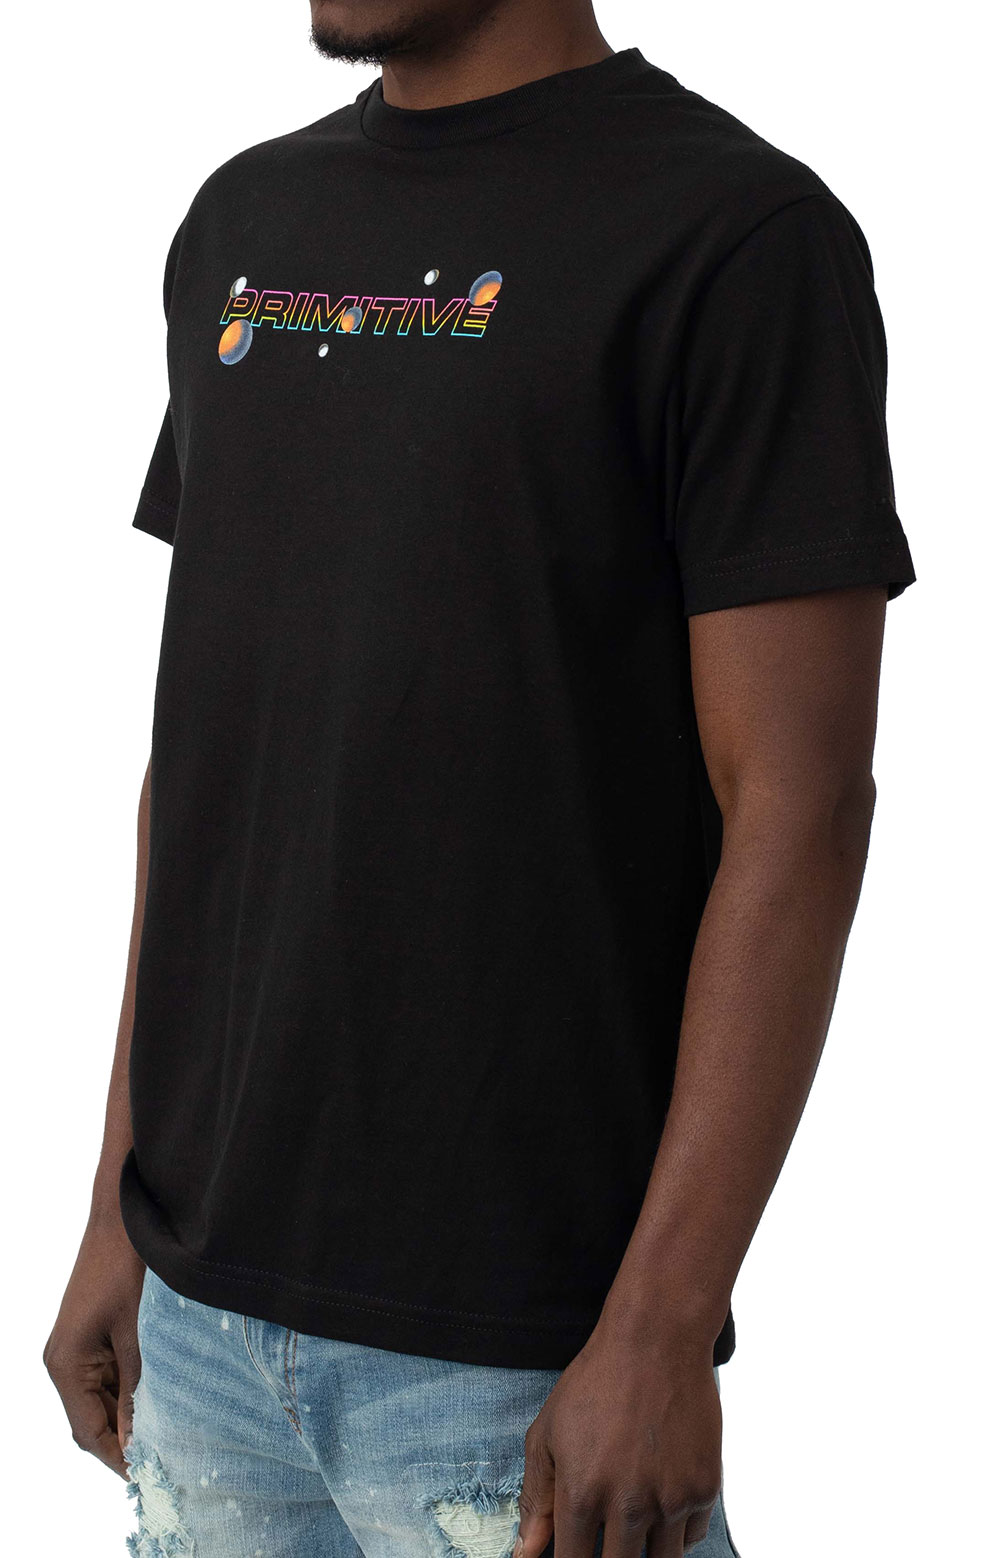 Dirty P Particles T-Shirt - Black 3